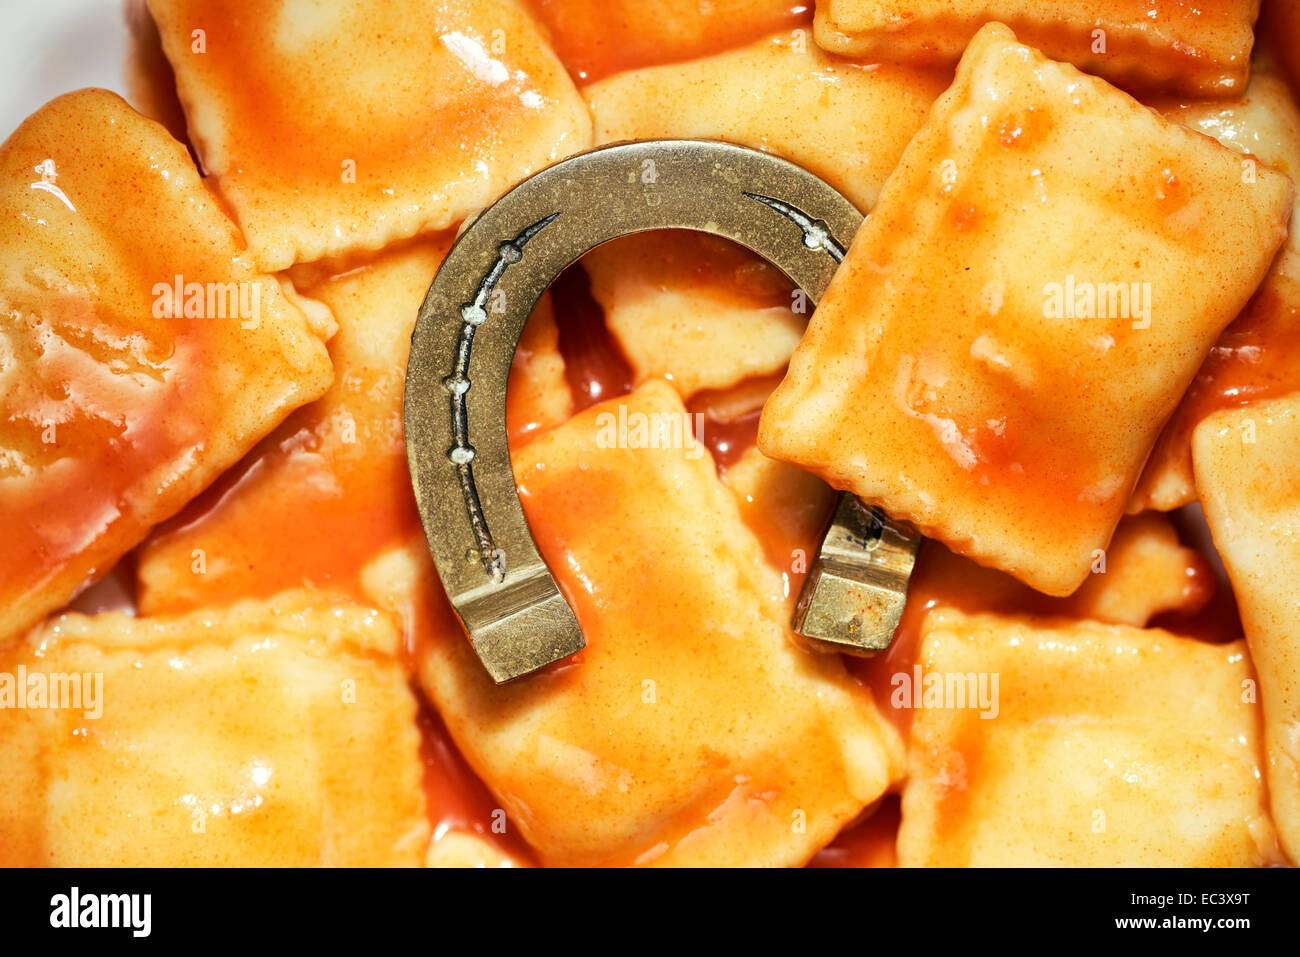 Horseshoe in convenience food, horse meat scandal - Stock Image